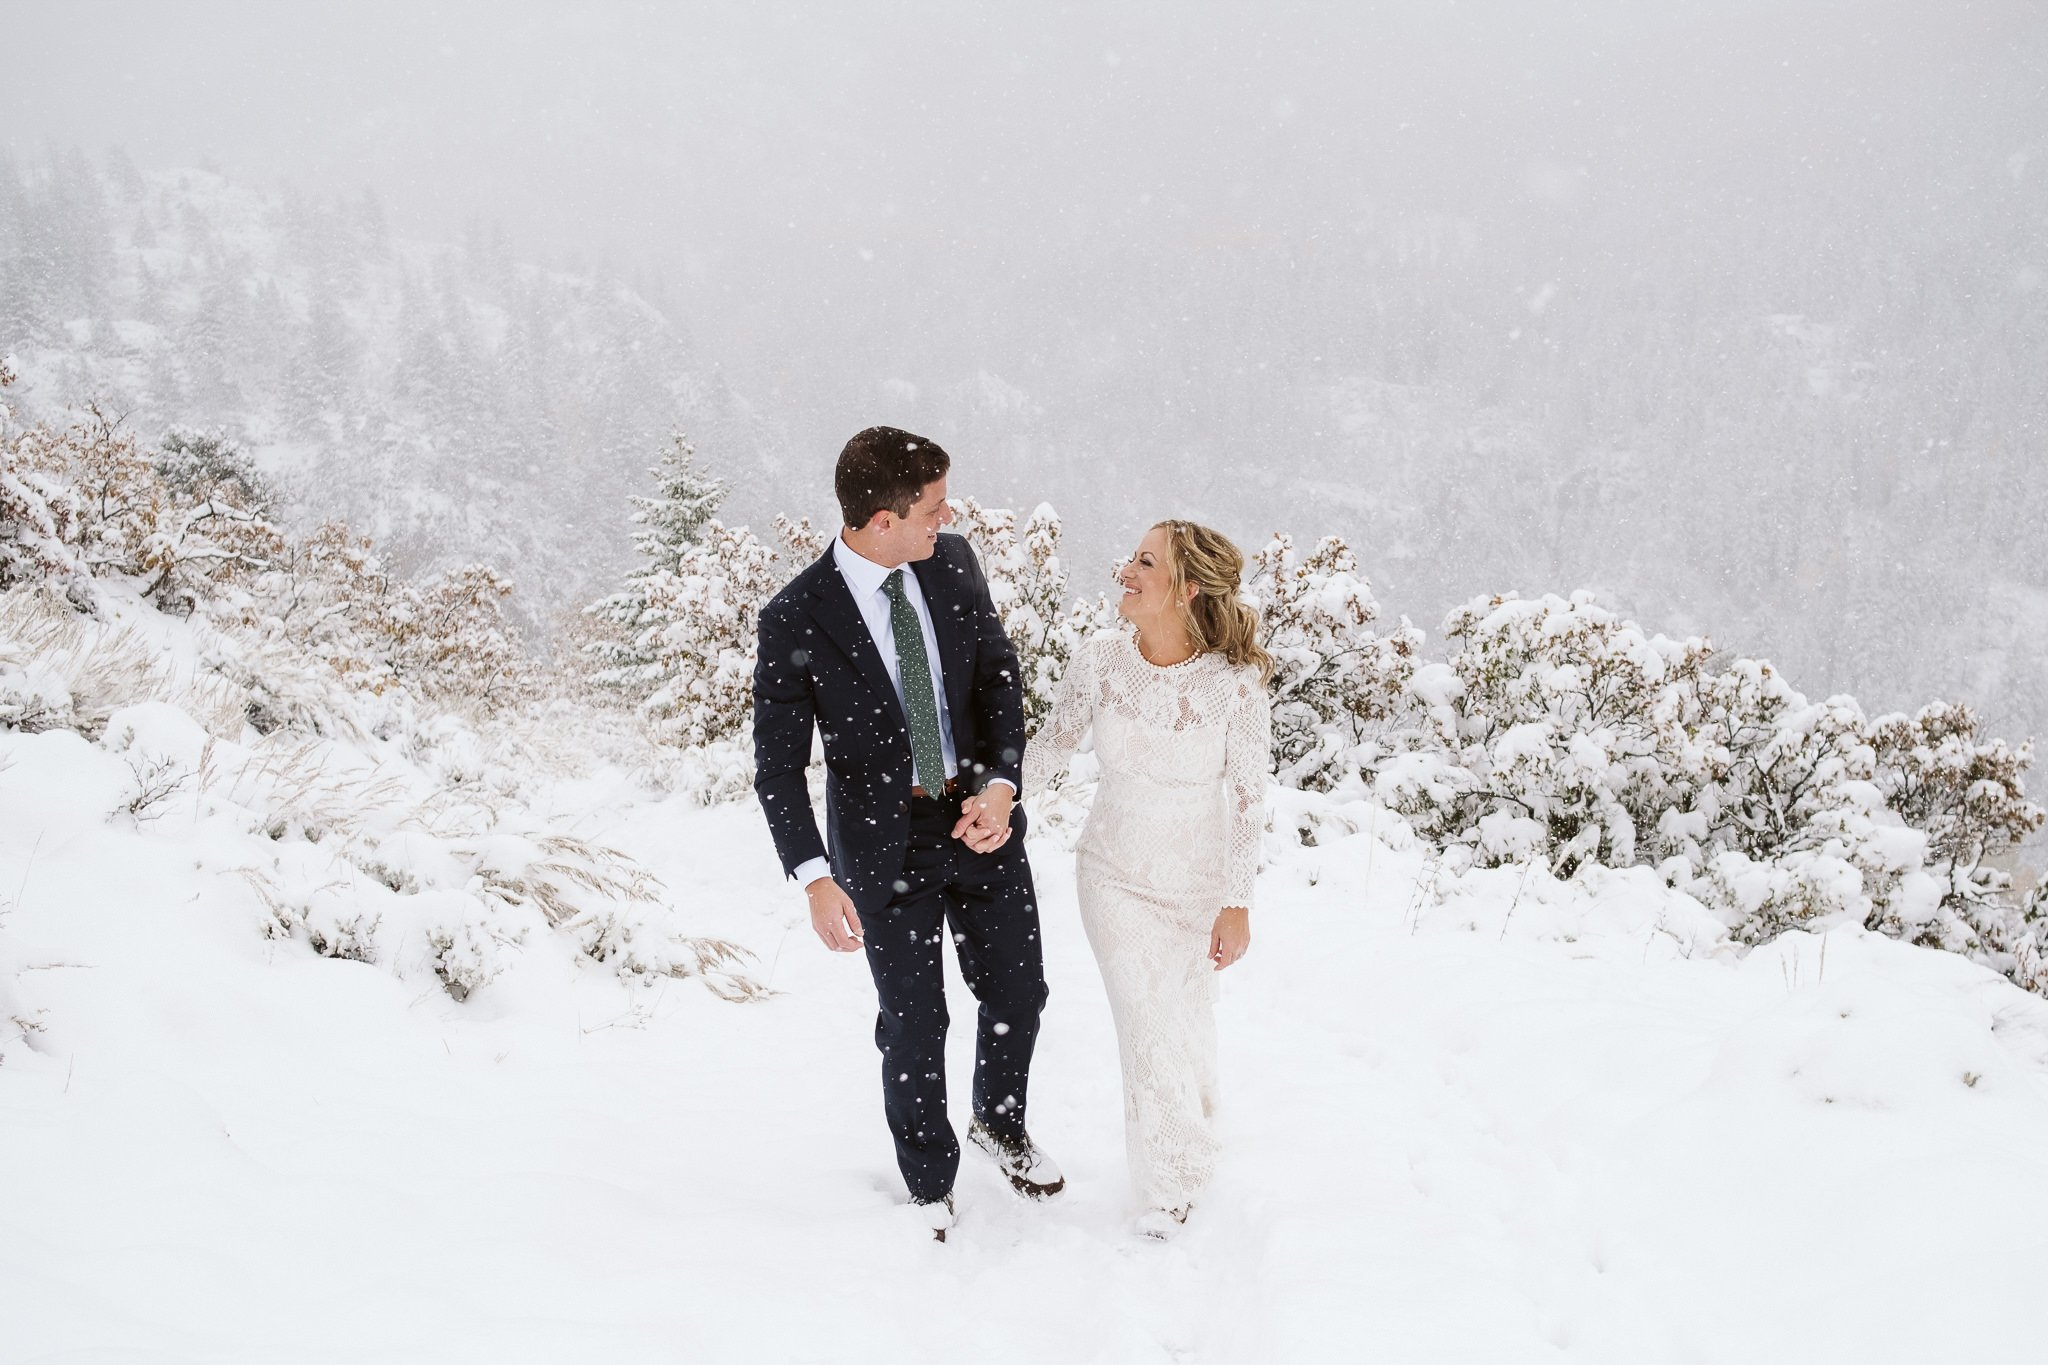 Bride and groom hiking in snow at Steamboat Springs elopement in winter